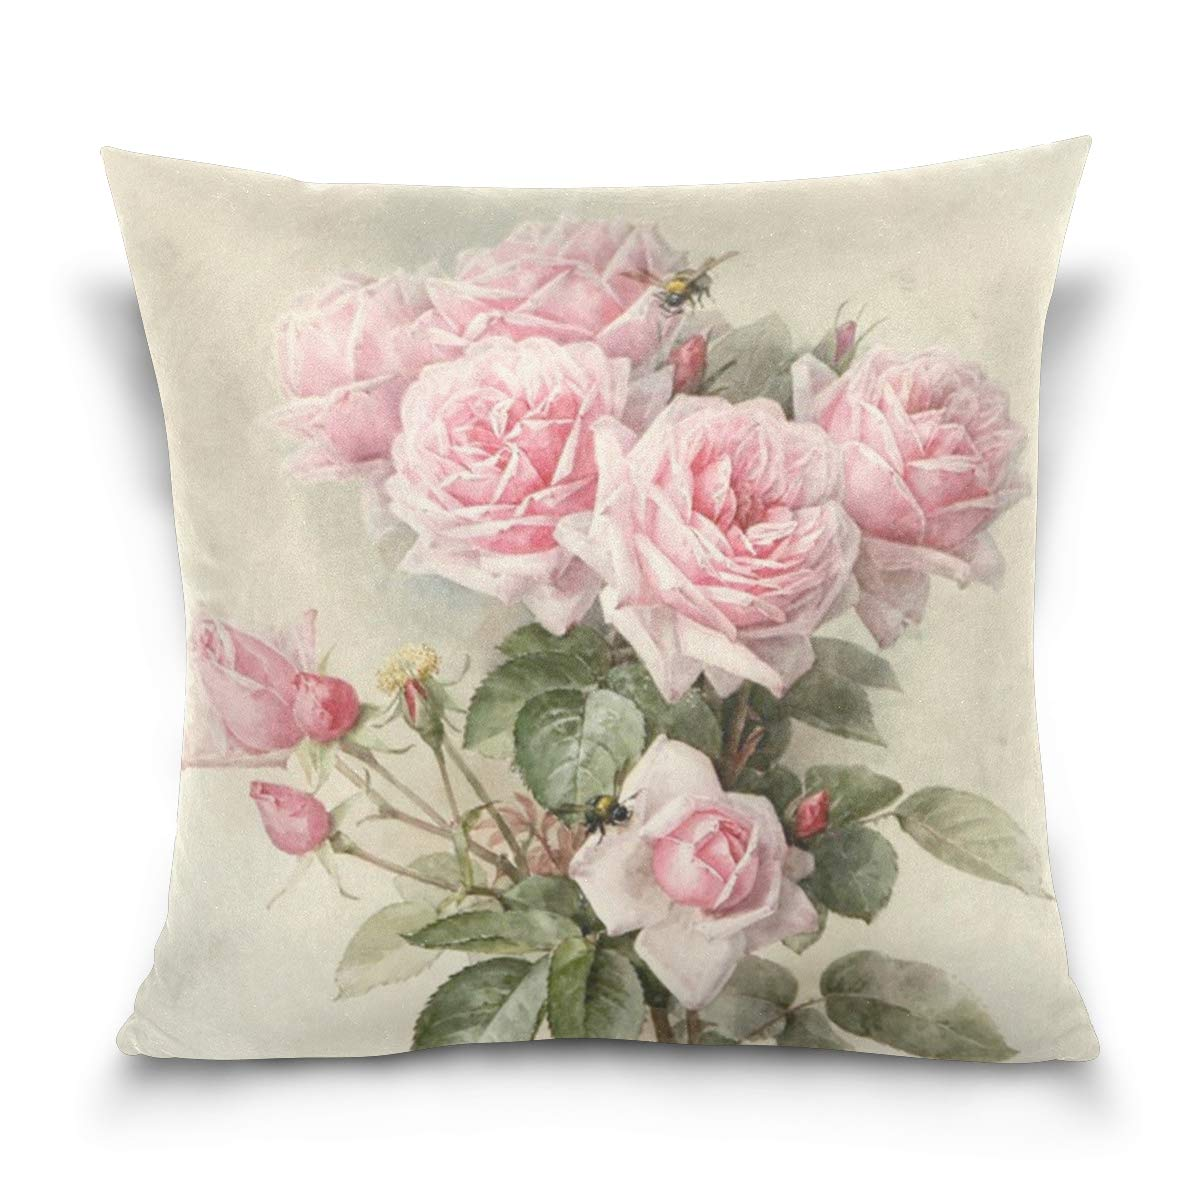 ZOEO Square Decorative Throw Pillow Case Cushion Cover,Vintage Shabby Chic Pink Rose Floral,Soft Pillowcase 16x16 inch